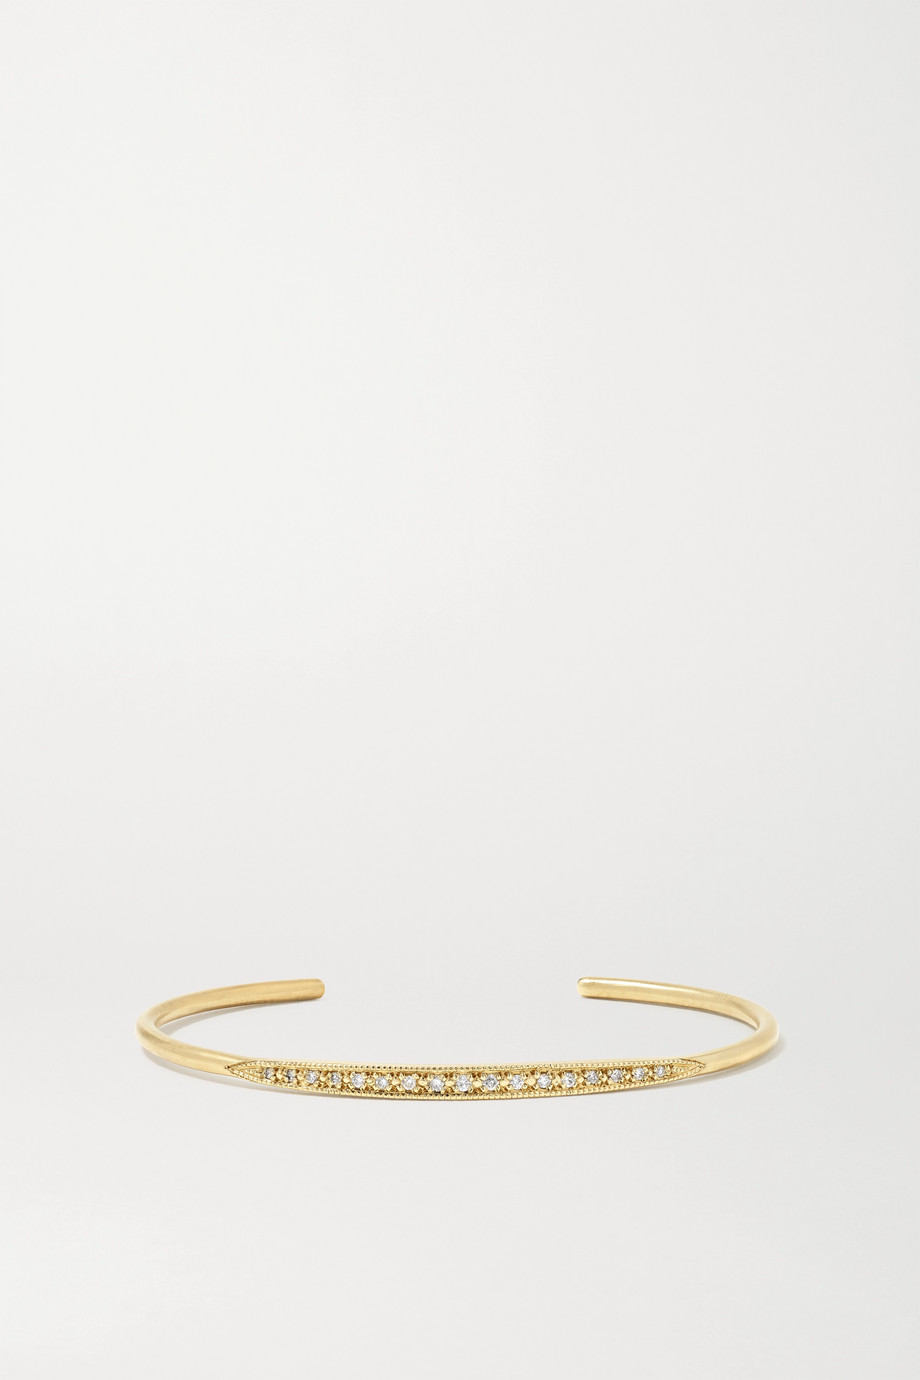 Brooke Gregson 14-karat gold diamond cuff